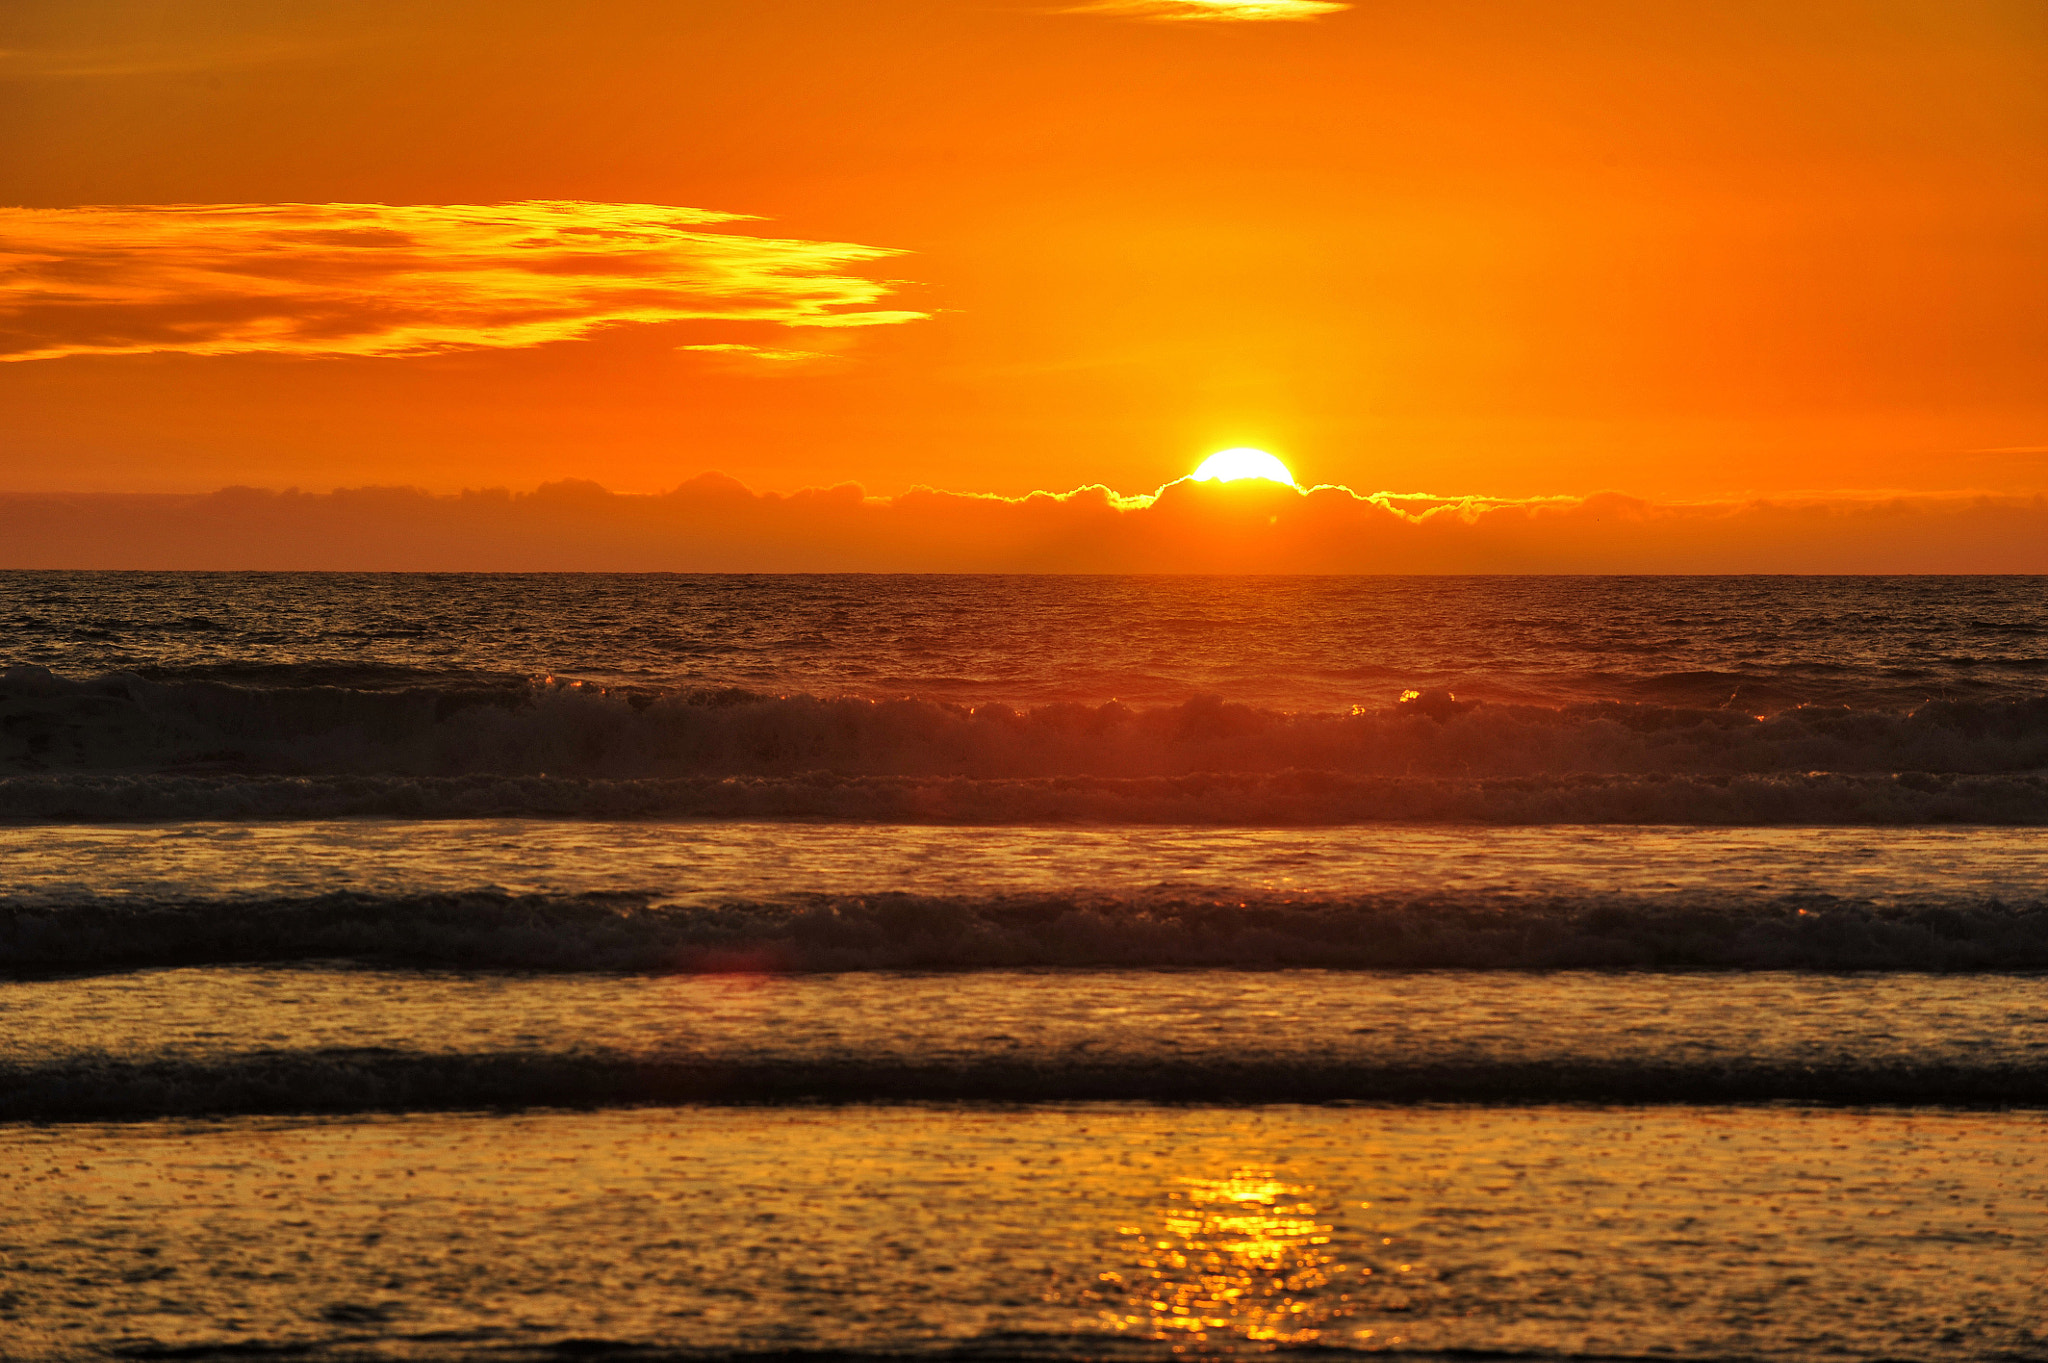 Photograph The Sun Sets in Oceanside - December 1, 2012 by Rich Cruse on 500px